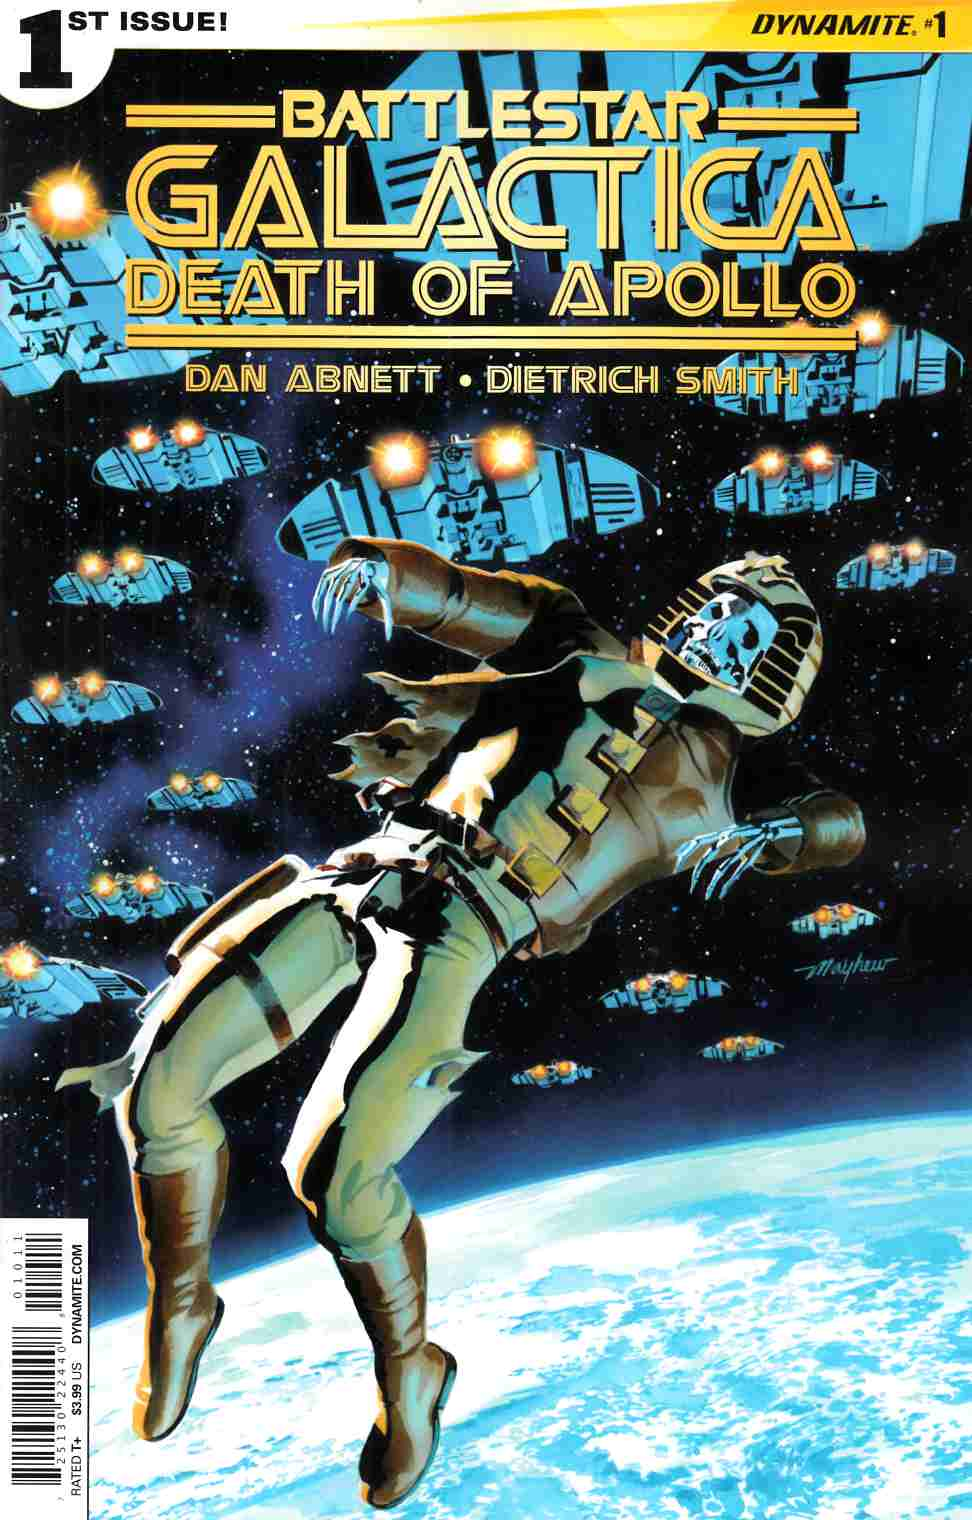 Battlestar Galactica Death of Apollo #1 Cover A- Mayhew [Dynamite Comic] THUMBNAIL